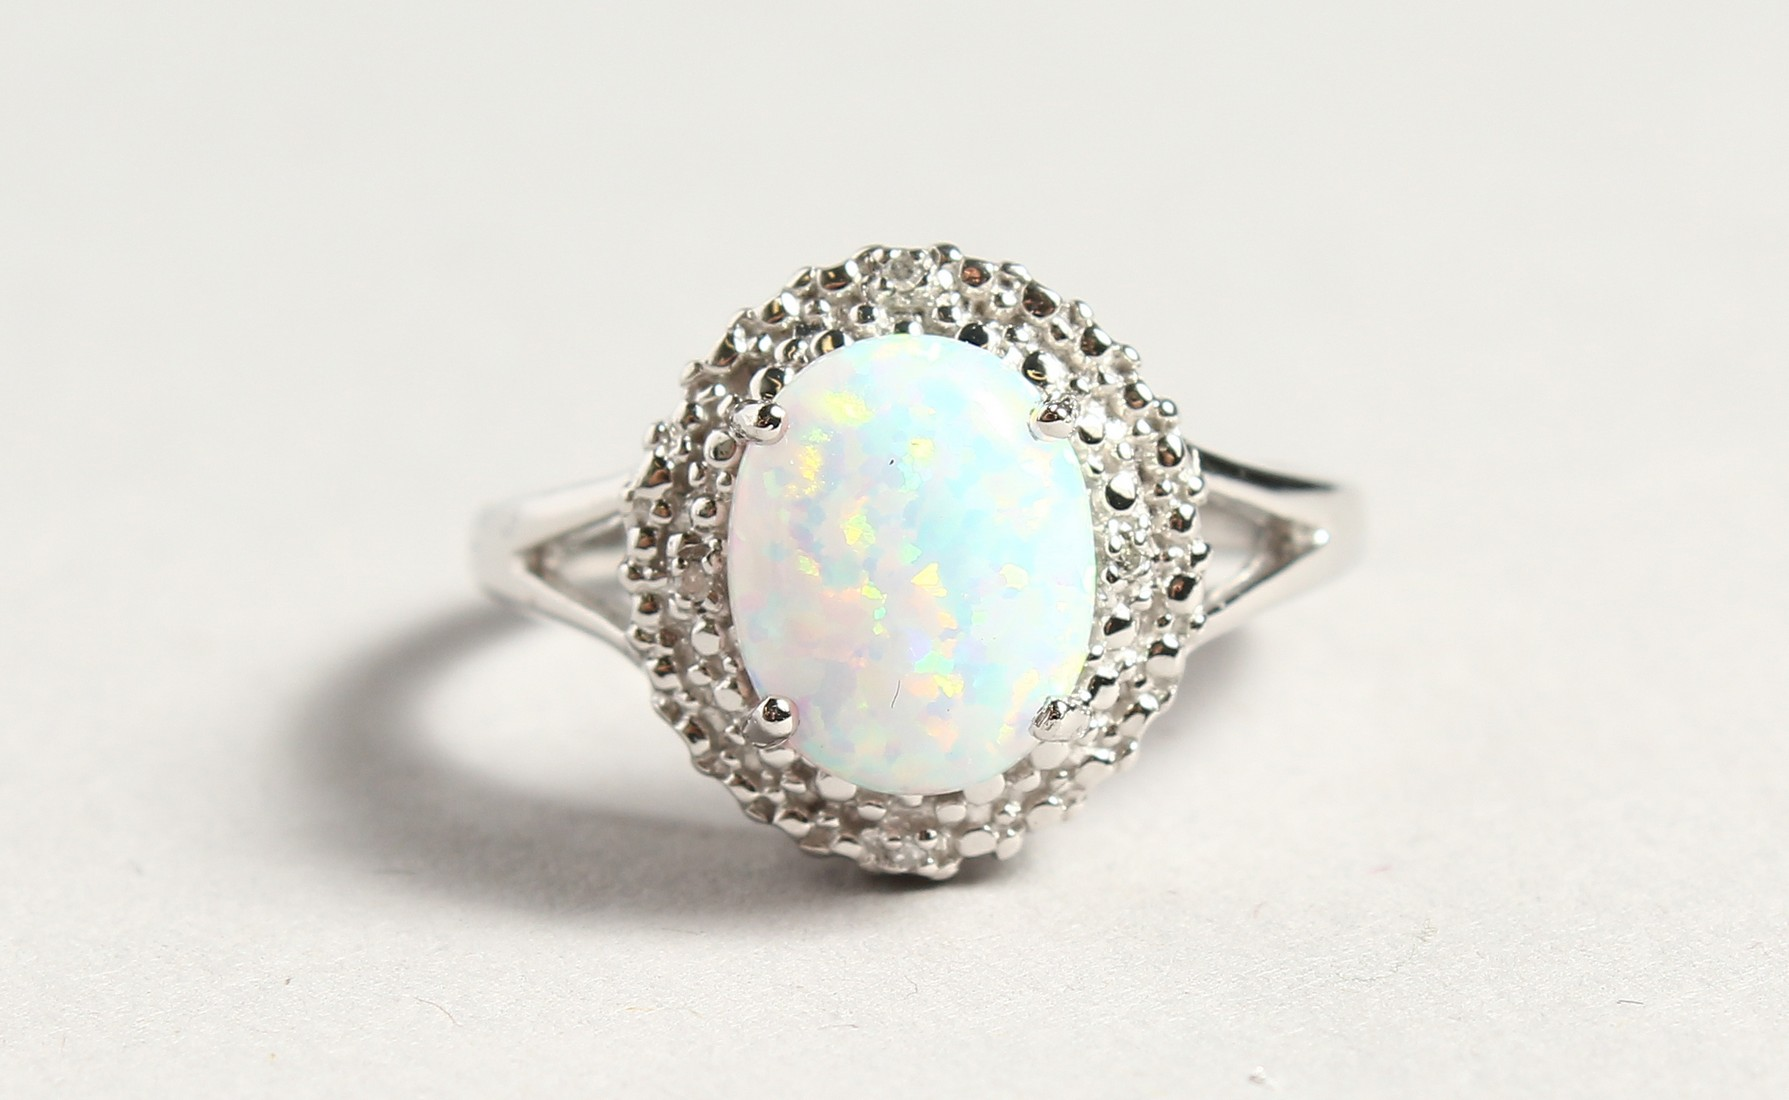 A SILVER OPALITE AND DIAMOND CLUSTER RING - Image 2 of 6